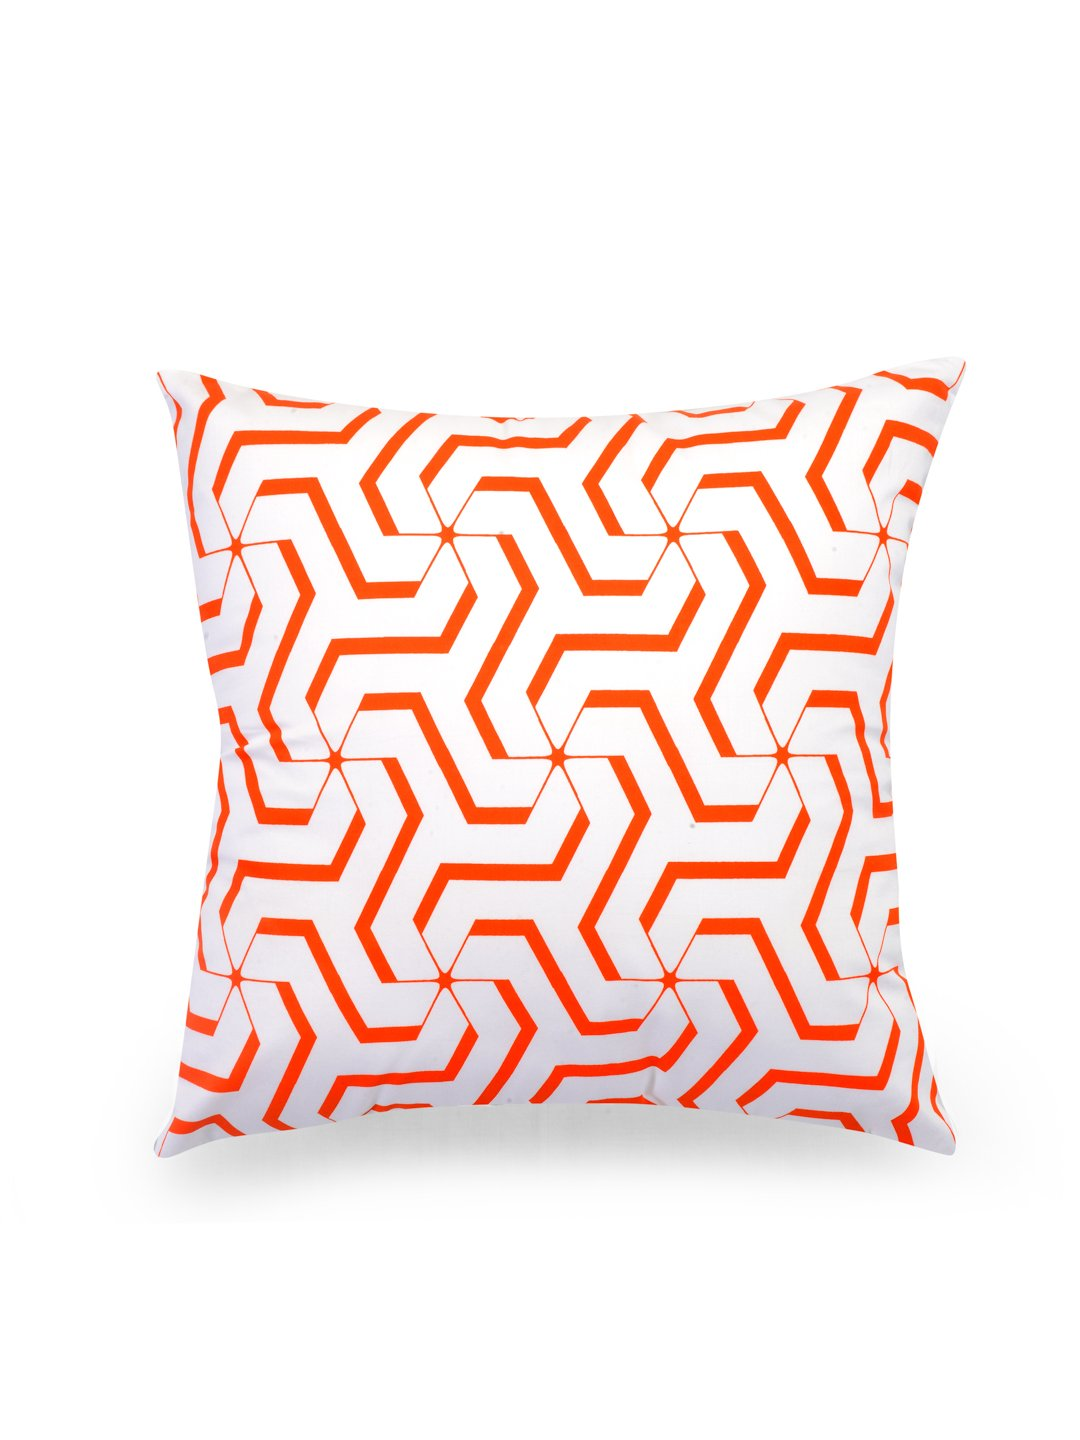 Hand-painted Tangerine Delight Cushion Covers (Set of 5) - RANGRAGE - 4